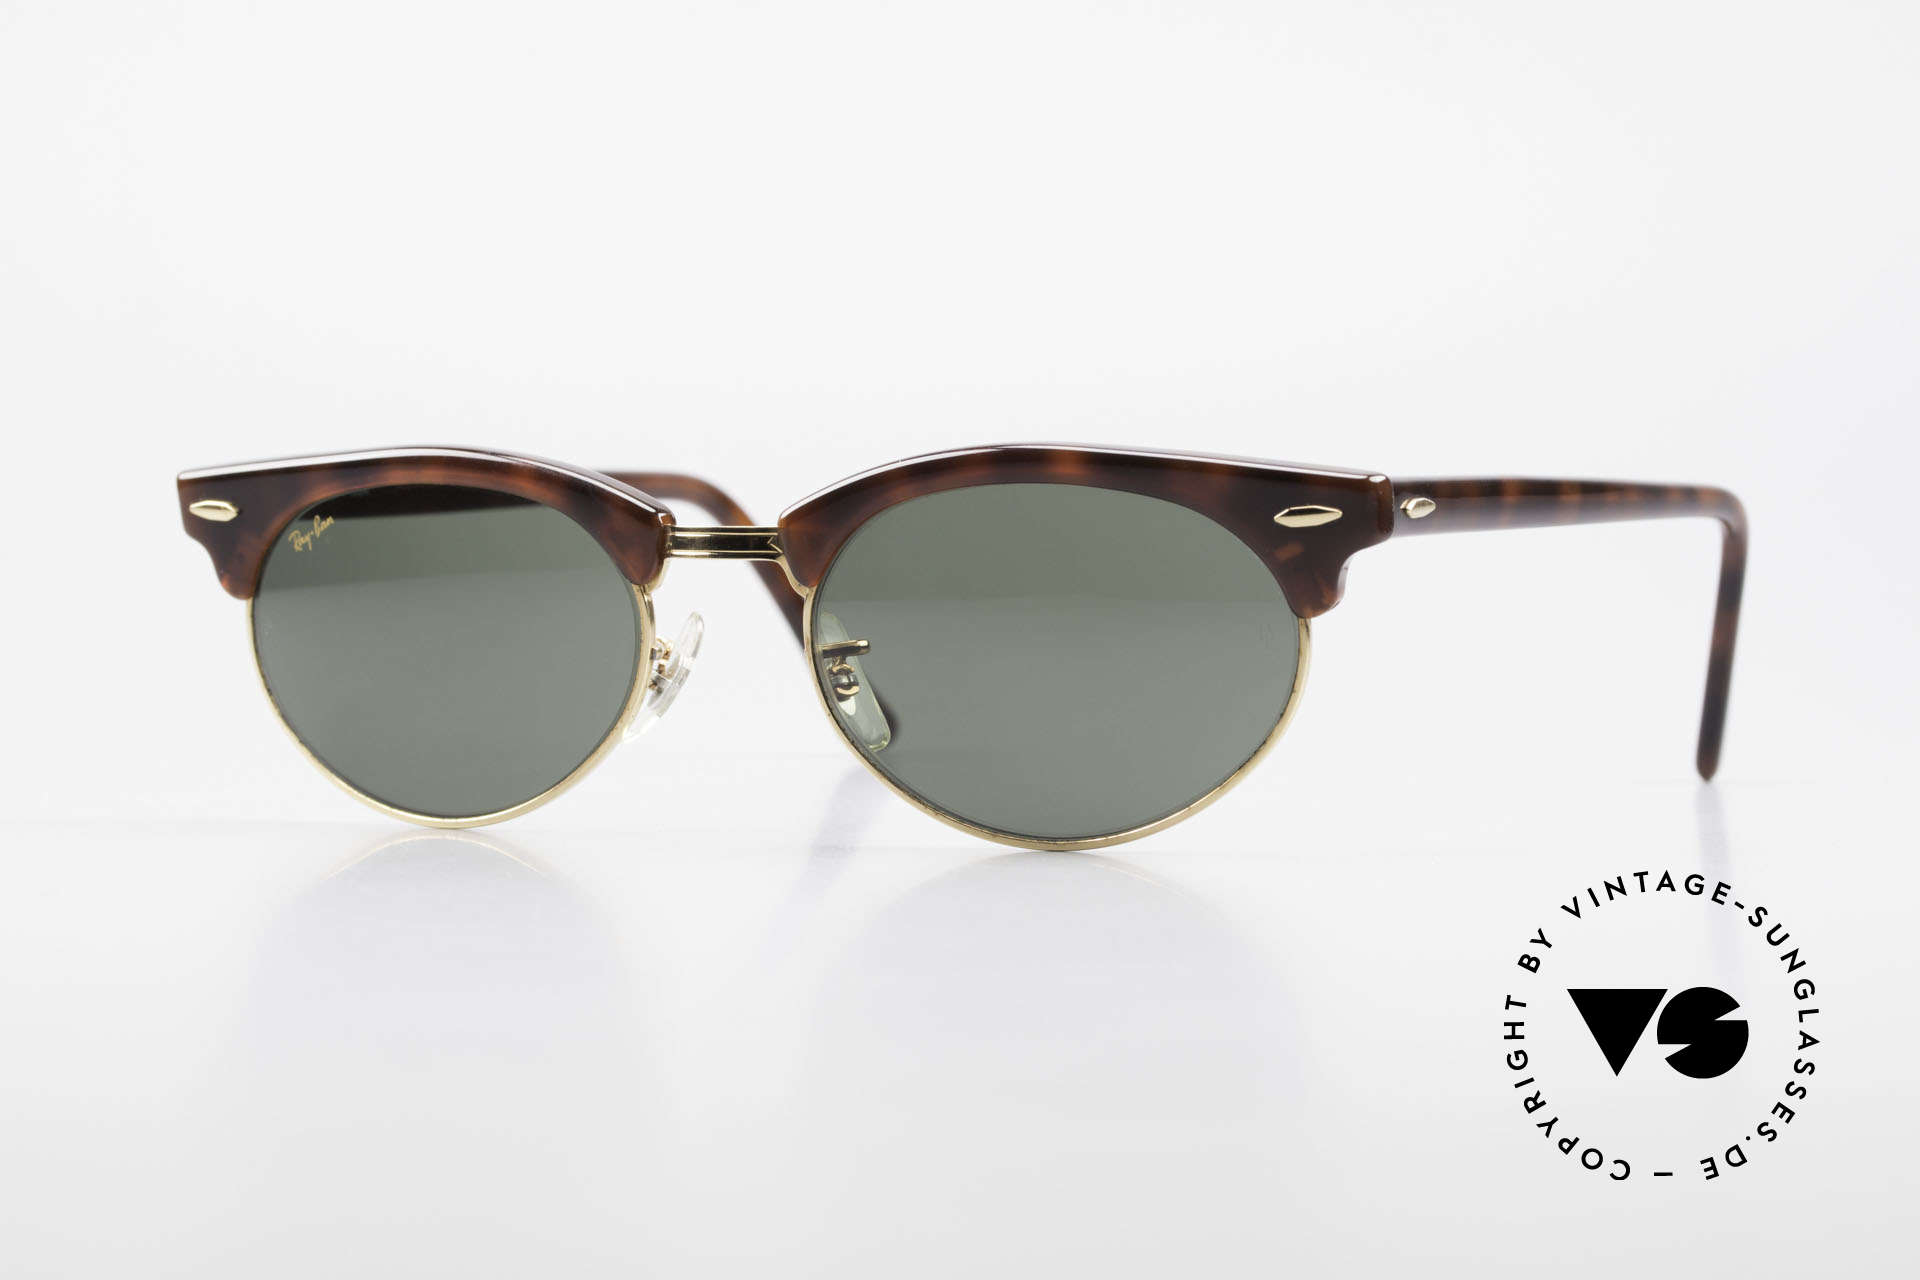 Ray Ban Clubmaster Oval 80's Bausch & Lomb Original, old original 1980's sunglasses by RAY-BAN, USA, Made for Men and Women